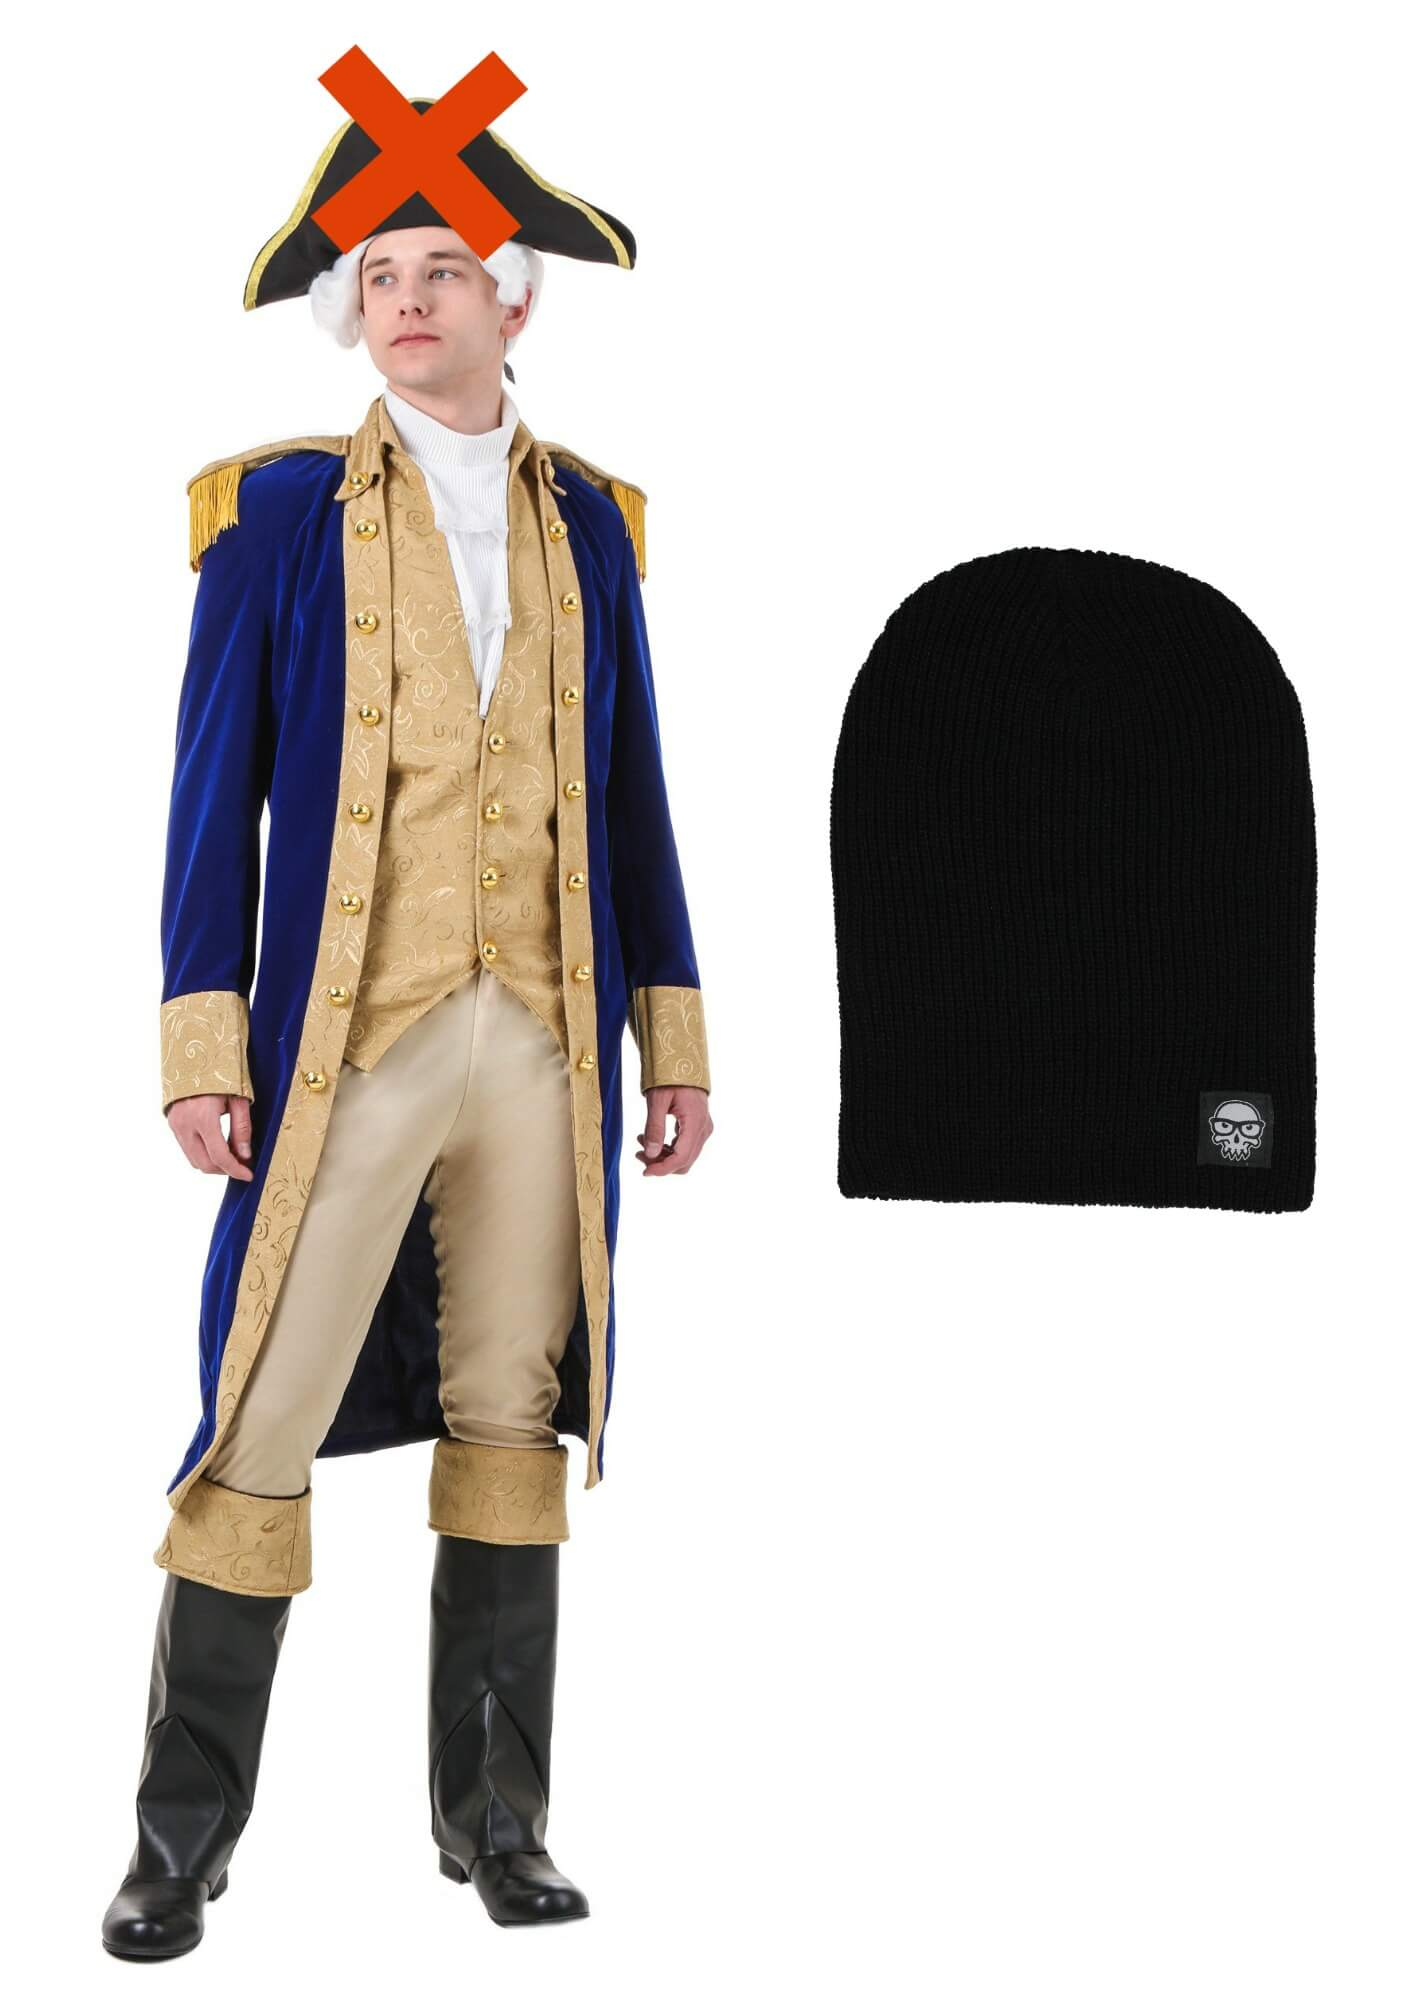 George Washington Costume - Shop Black Skullcap - Shop  sc 1 st  Halloween Costumes & DIY Hamilton Costume Ideas for Halloween That Will Leave You ...